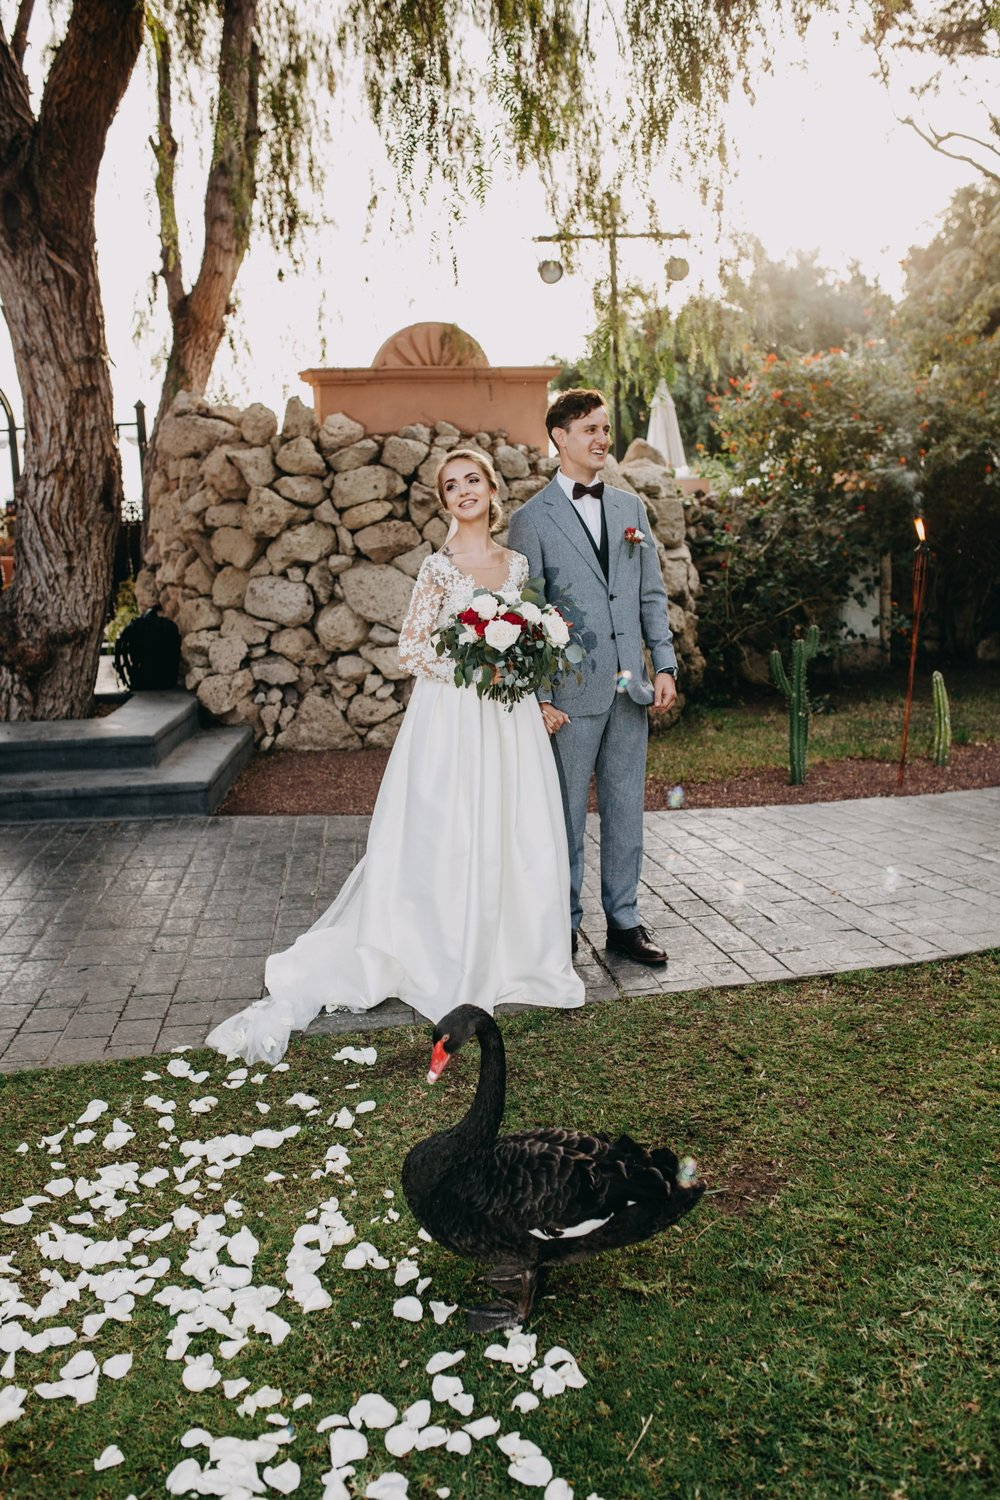 Black swans that swim in the lake where the ceremony takes place. They are friendly and love to come out to newlyweds after their ceremony :)